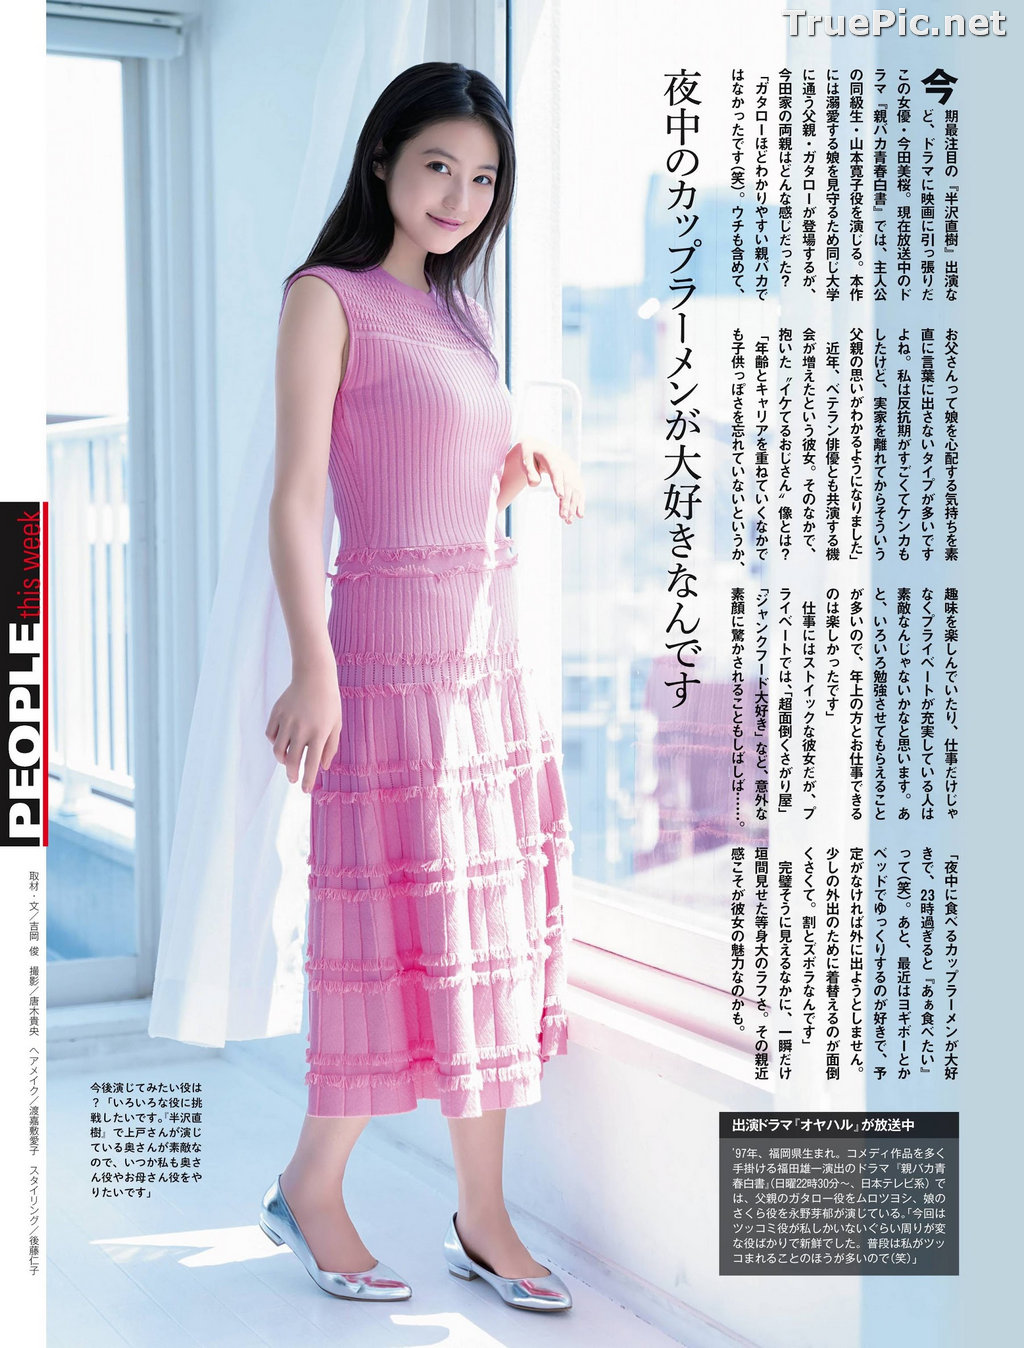 Image Japanese Actress and Model - Mio Imada (今田美櫻) - Sexy Picture Collection 2020 - TruePic.net - Picture-7